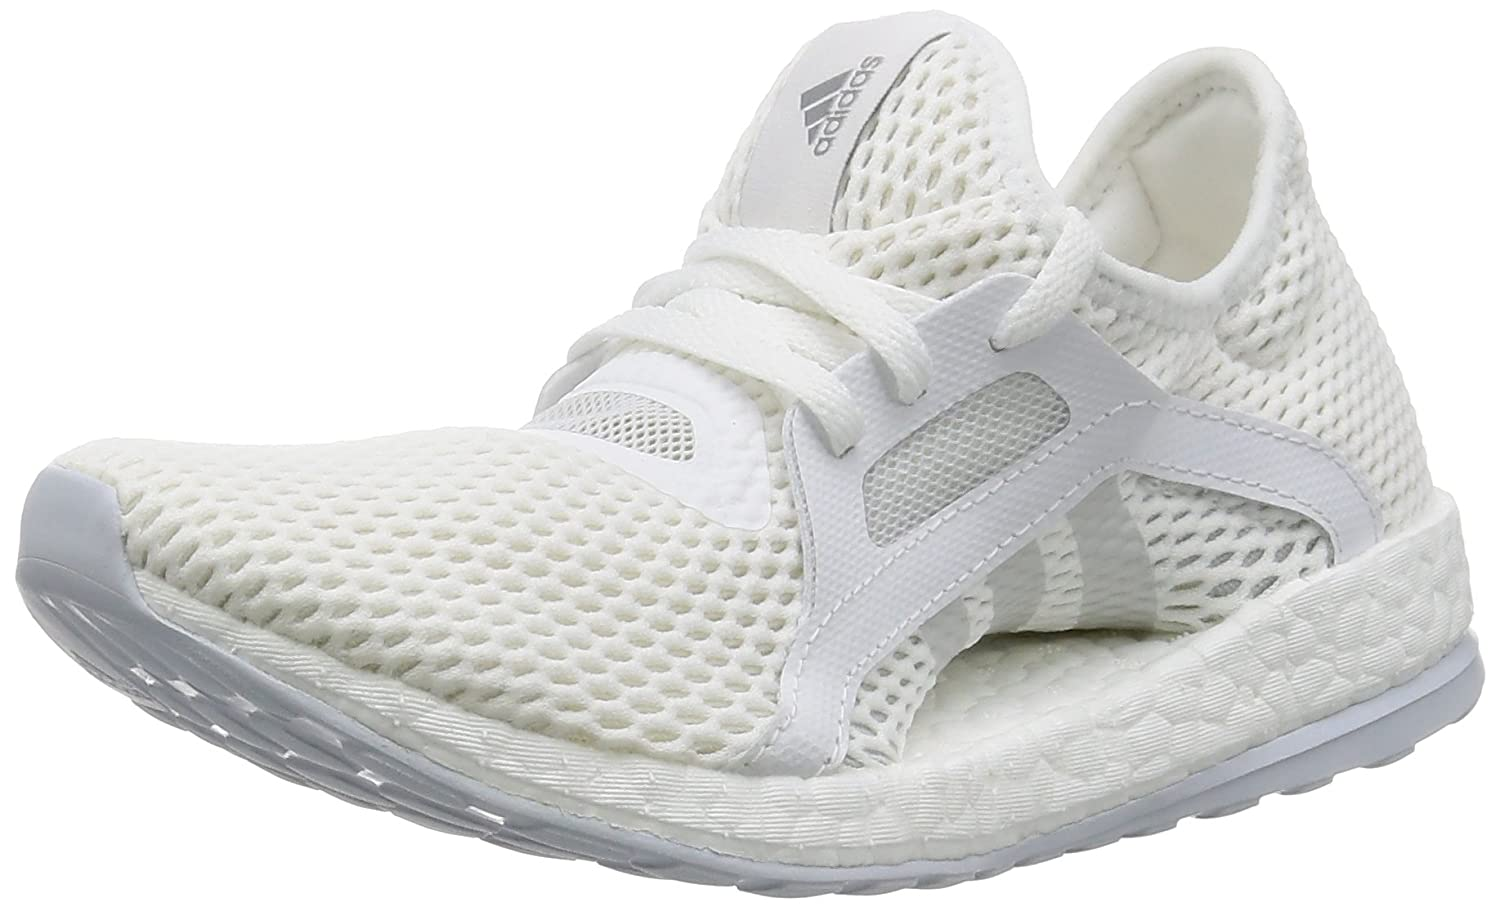 72018ddba adidas Unisex Adults  Pureboost X Running Shoes  Amazon.co.uk  Shoes   Bags